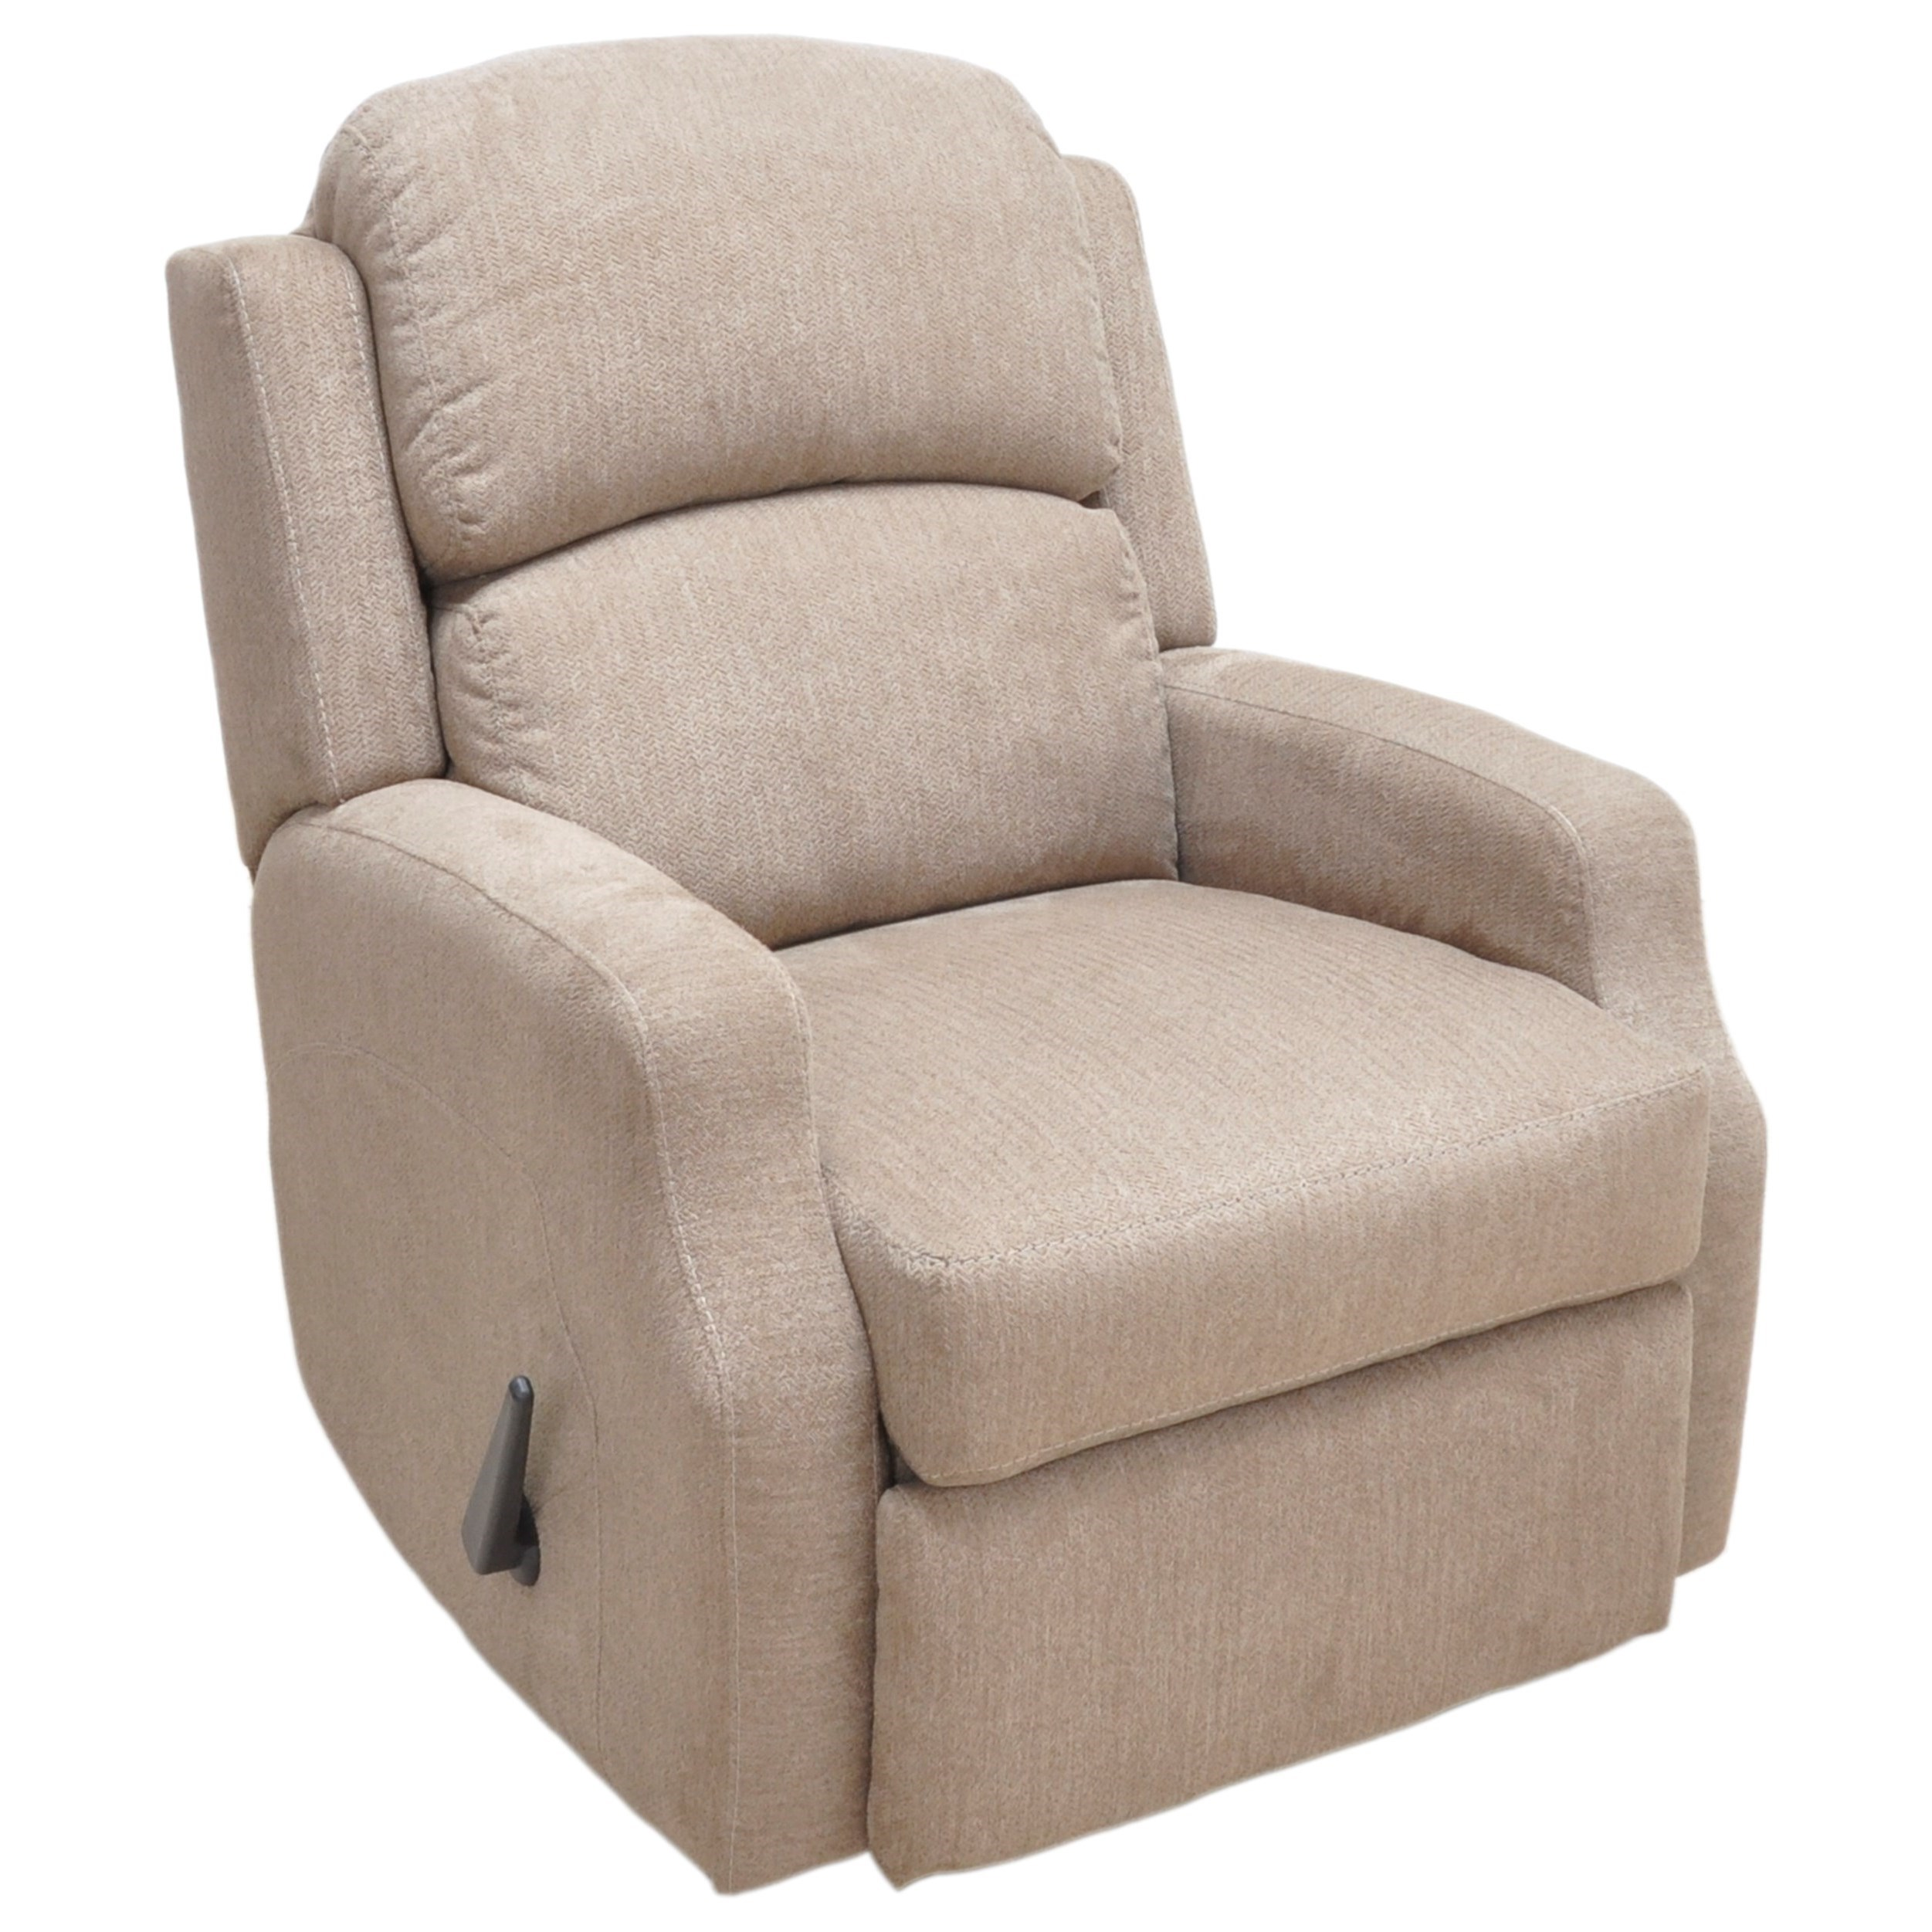 Franklin Recliners Duchess Power Lay Flat Recliner by Franklin at Lagniappe Home Store